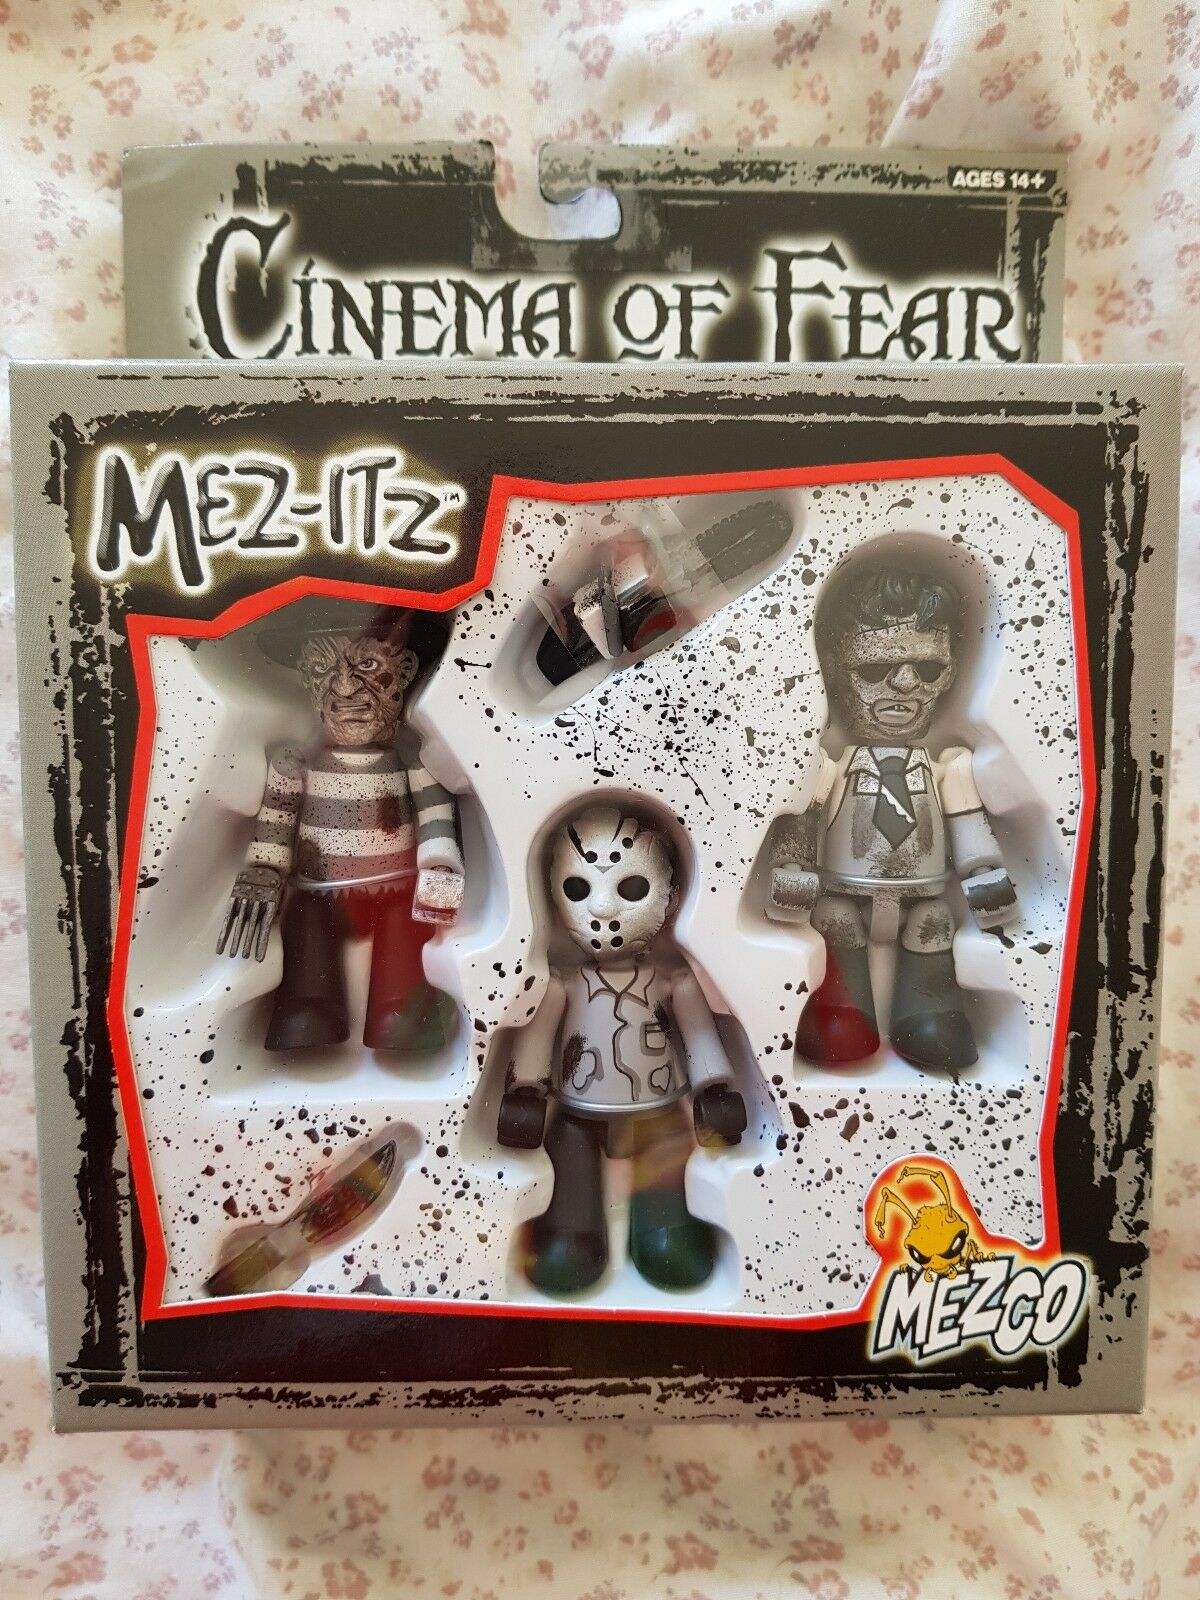 Mezco mez-itz cinema of fear rare schwarz and Weiß set w shipping box leatherFace